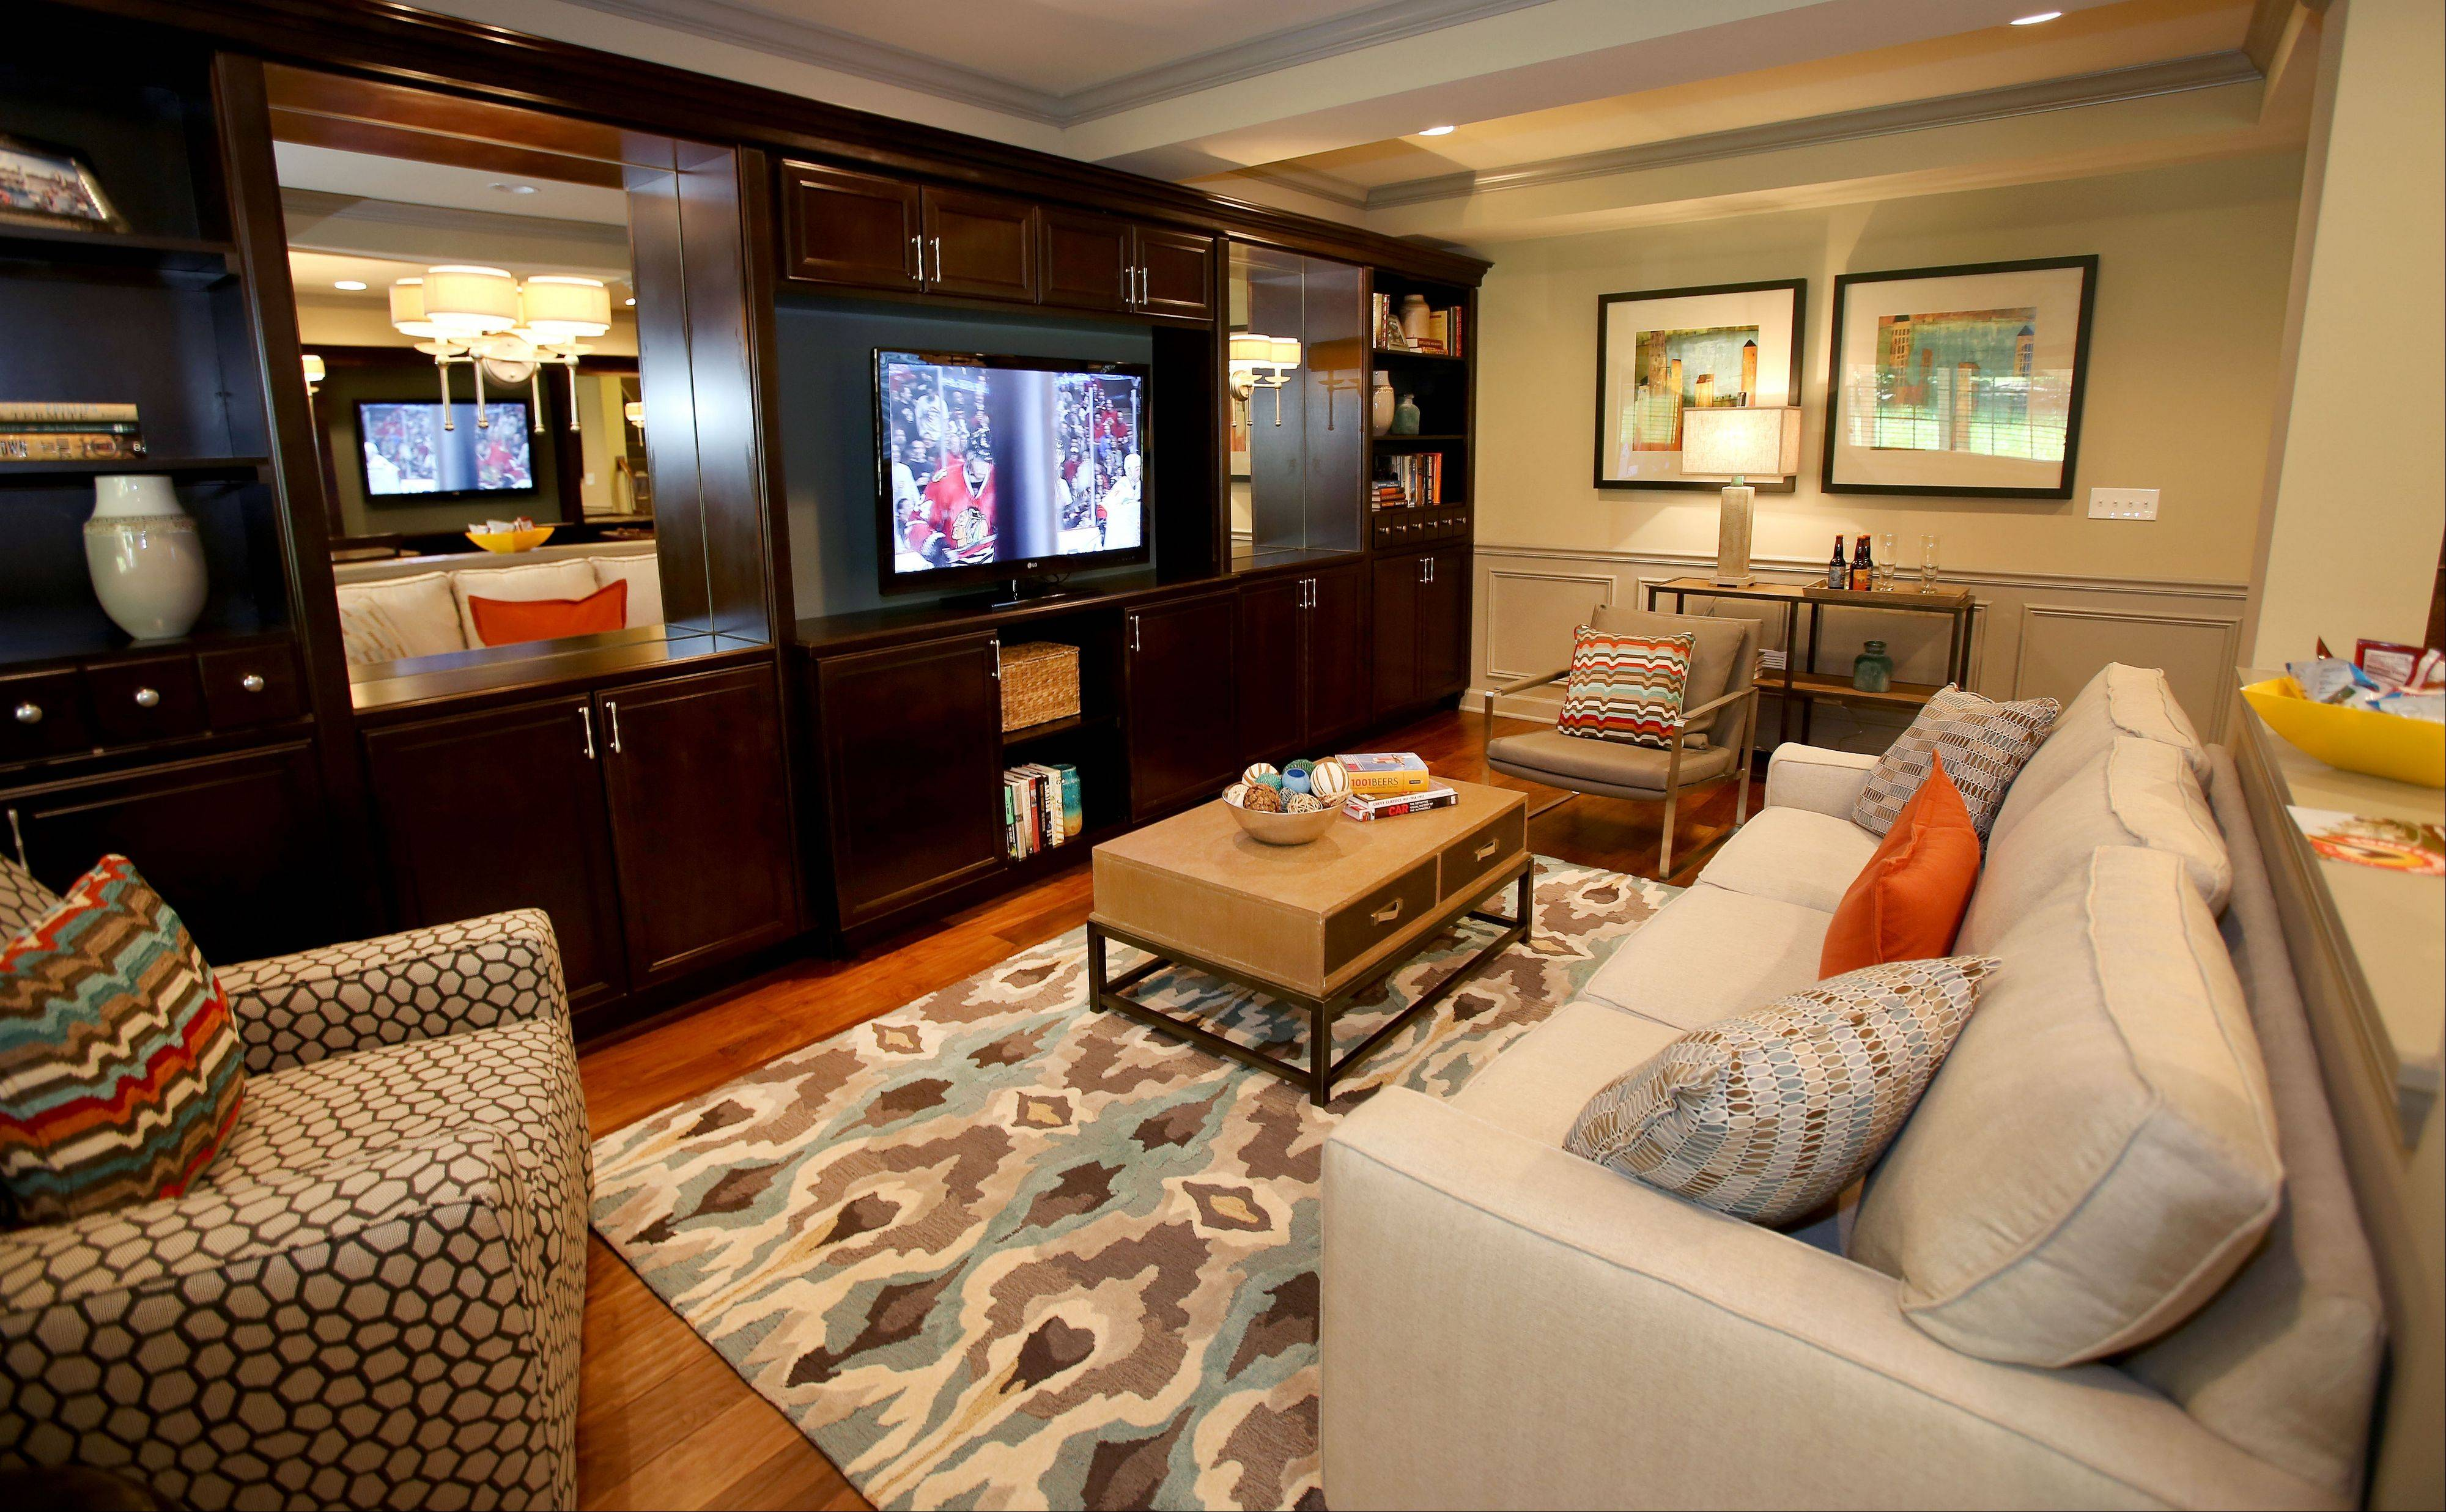 With a bar area, media room and game room, the lower level of the Braeden model is ideal for entertaining.